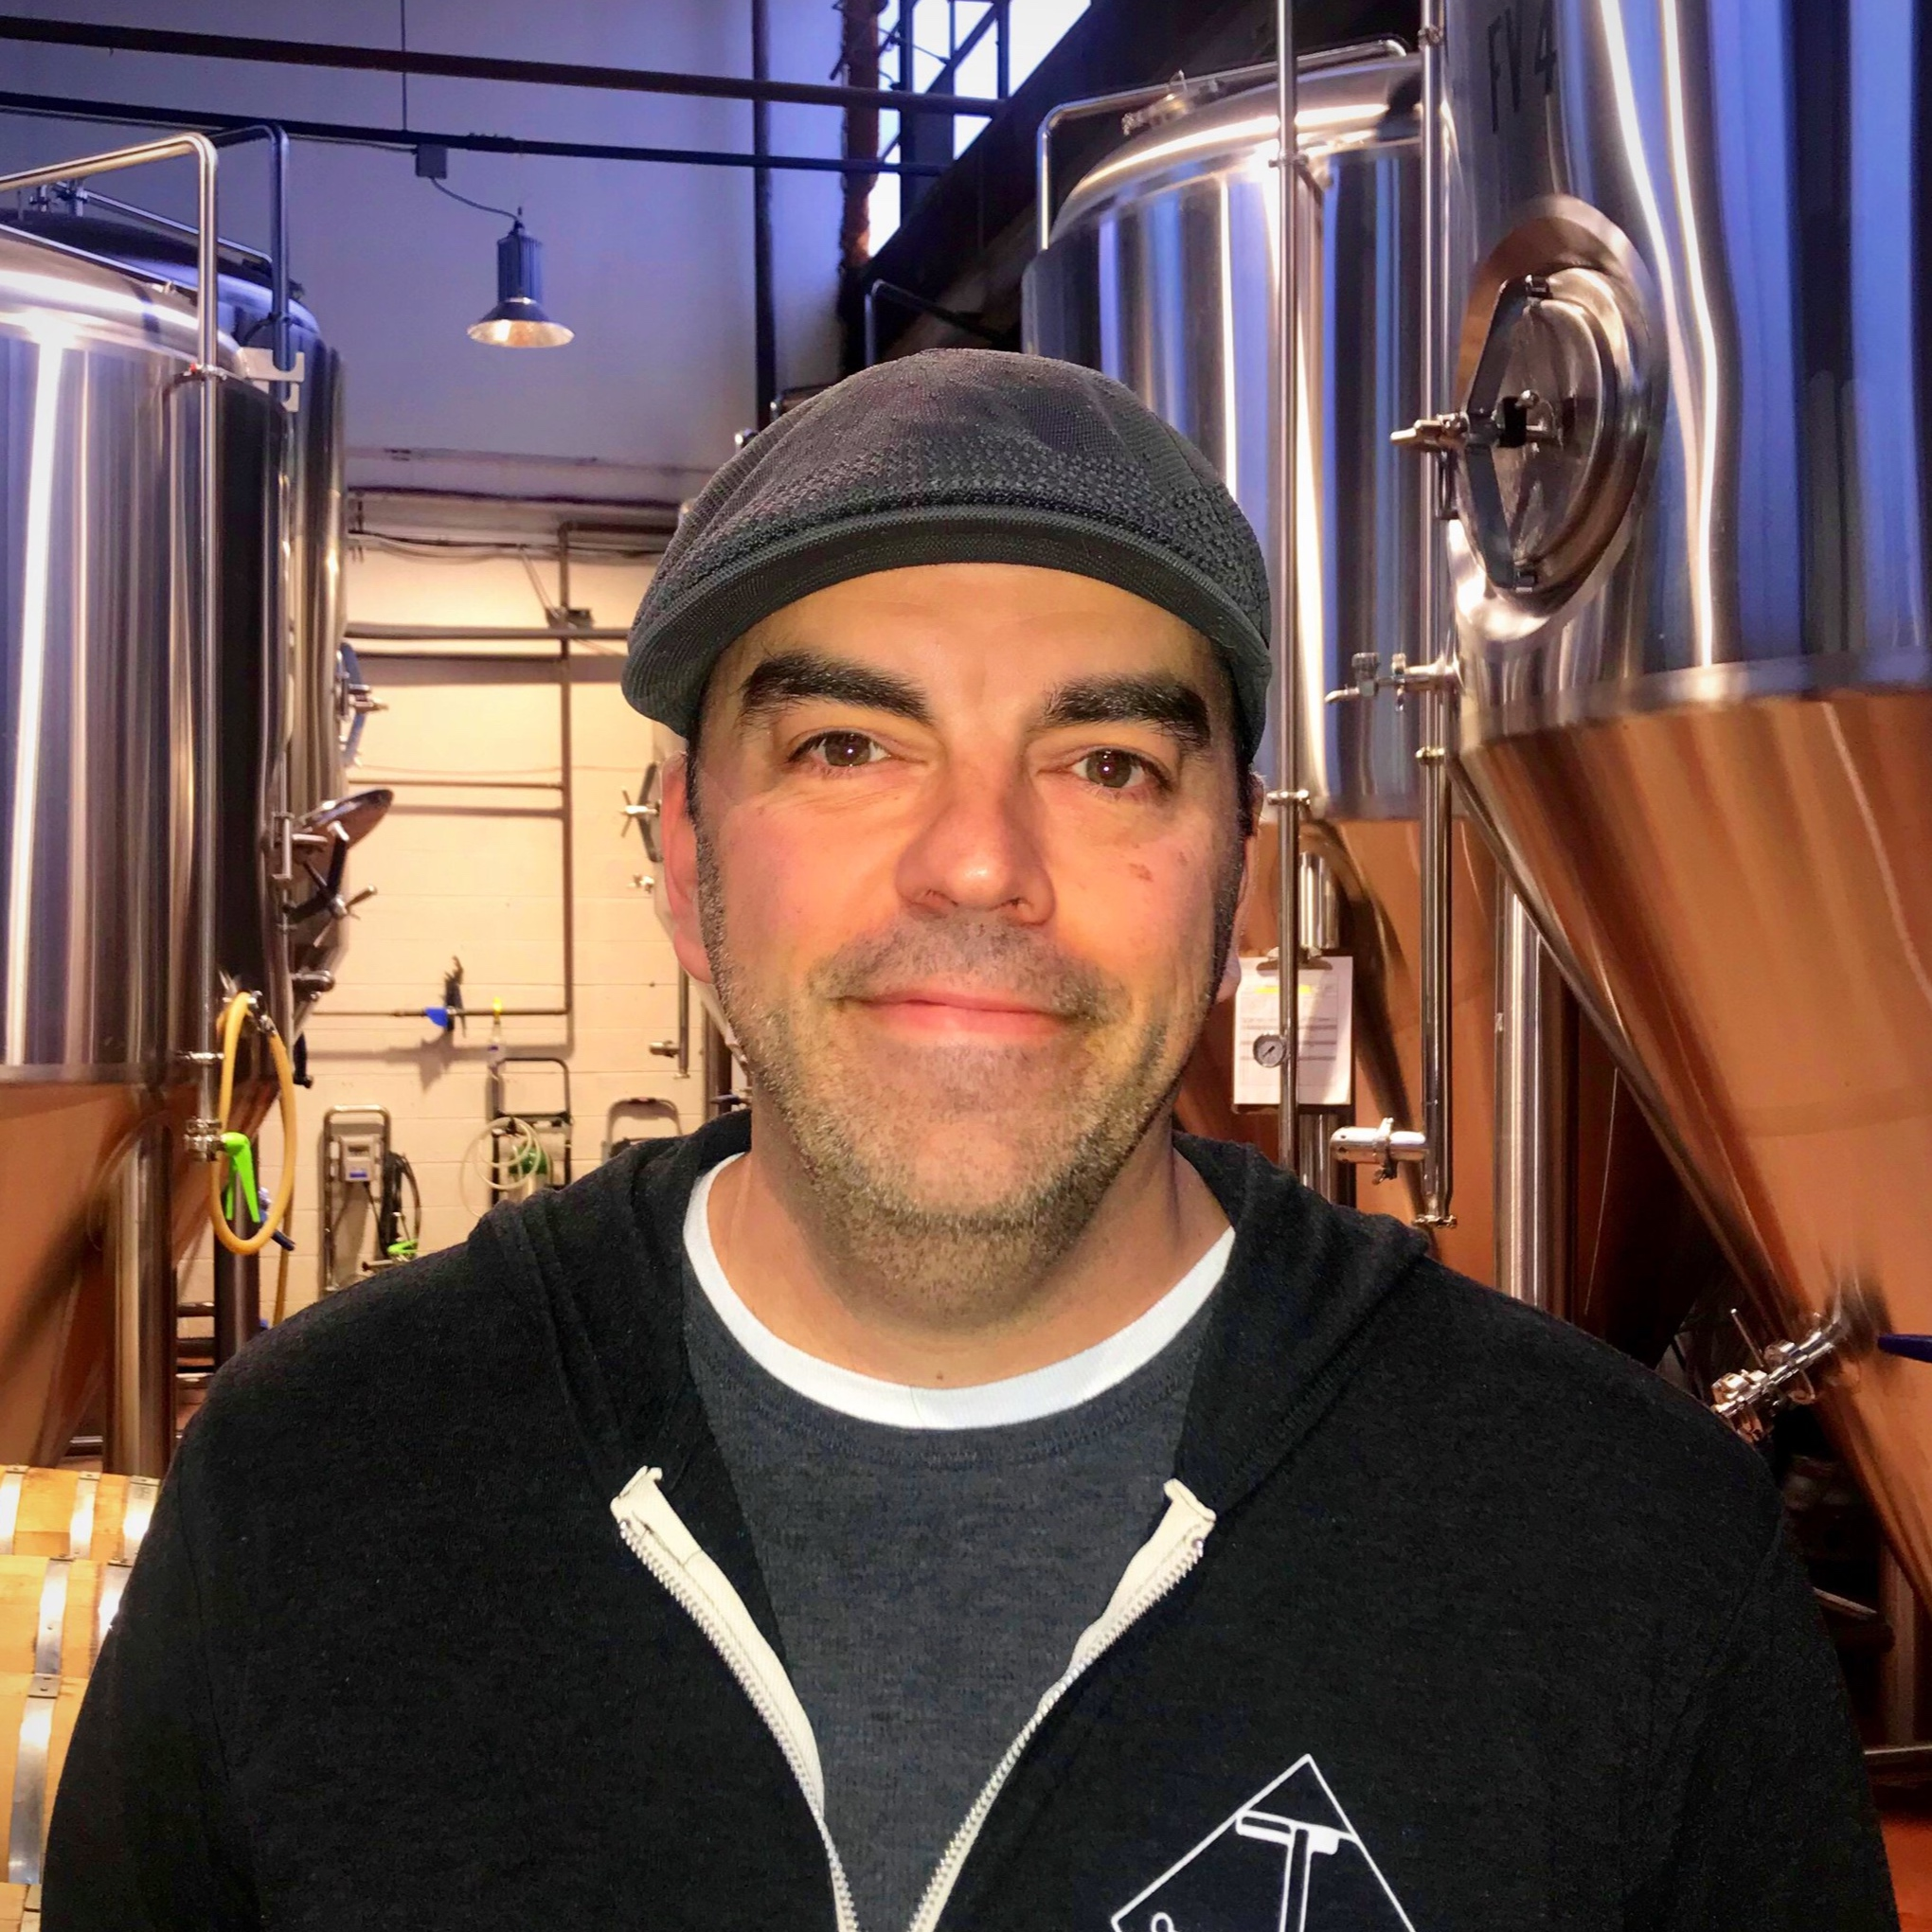 Torben, Sales Rep/Events  A man of many talents, You may also know him as DJ Teebot, whose mad DJ skills get the party started. When not DJing or working in the Tap Room, he's our second Chicago-area salesperson, repping Temperance in the burbs.